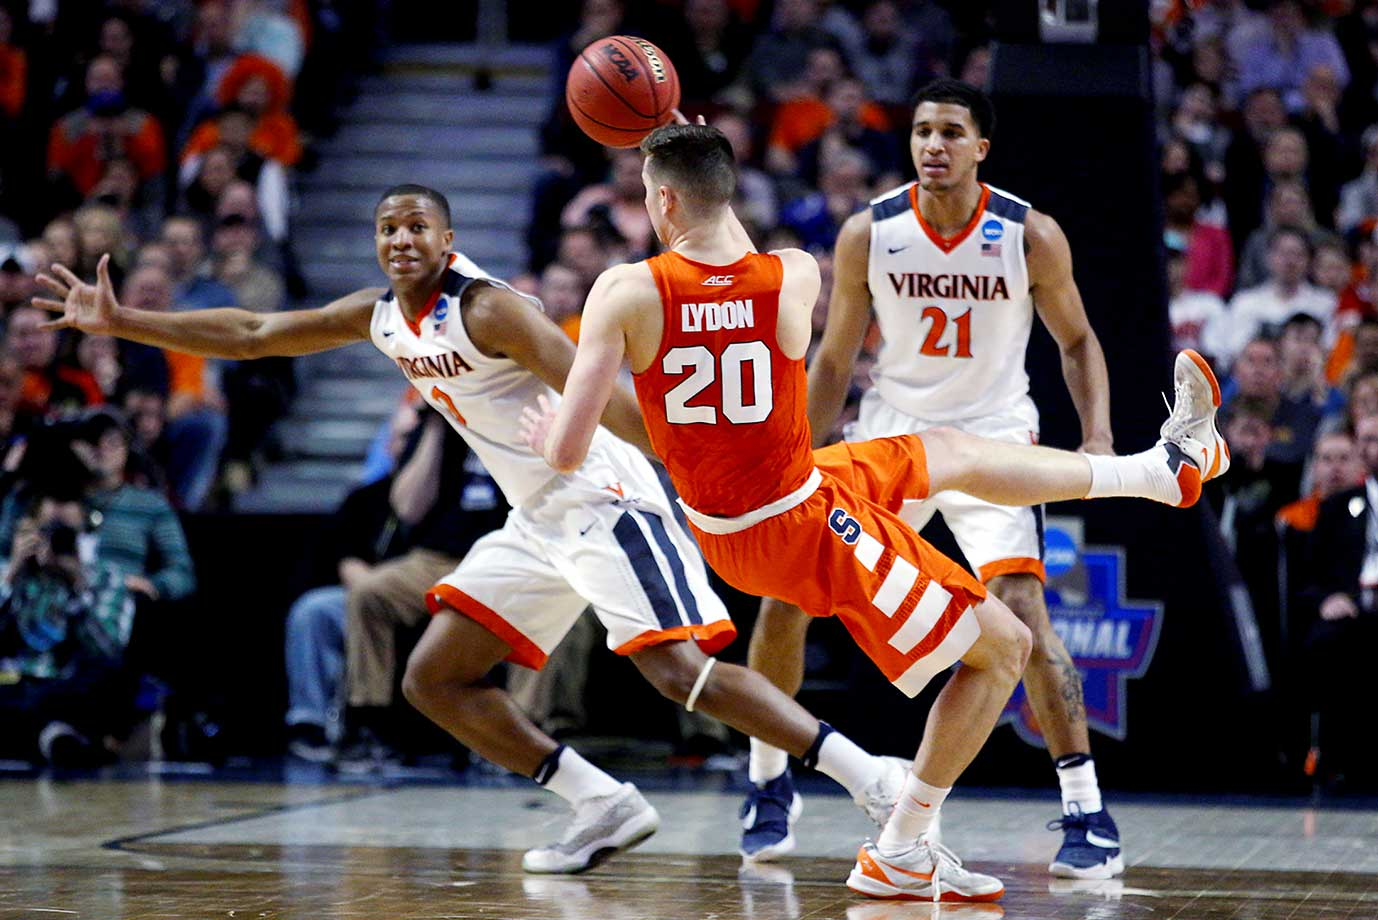 Tyler Lydon of Syracuse looses his shoe while making a pass against Virginia.